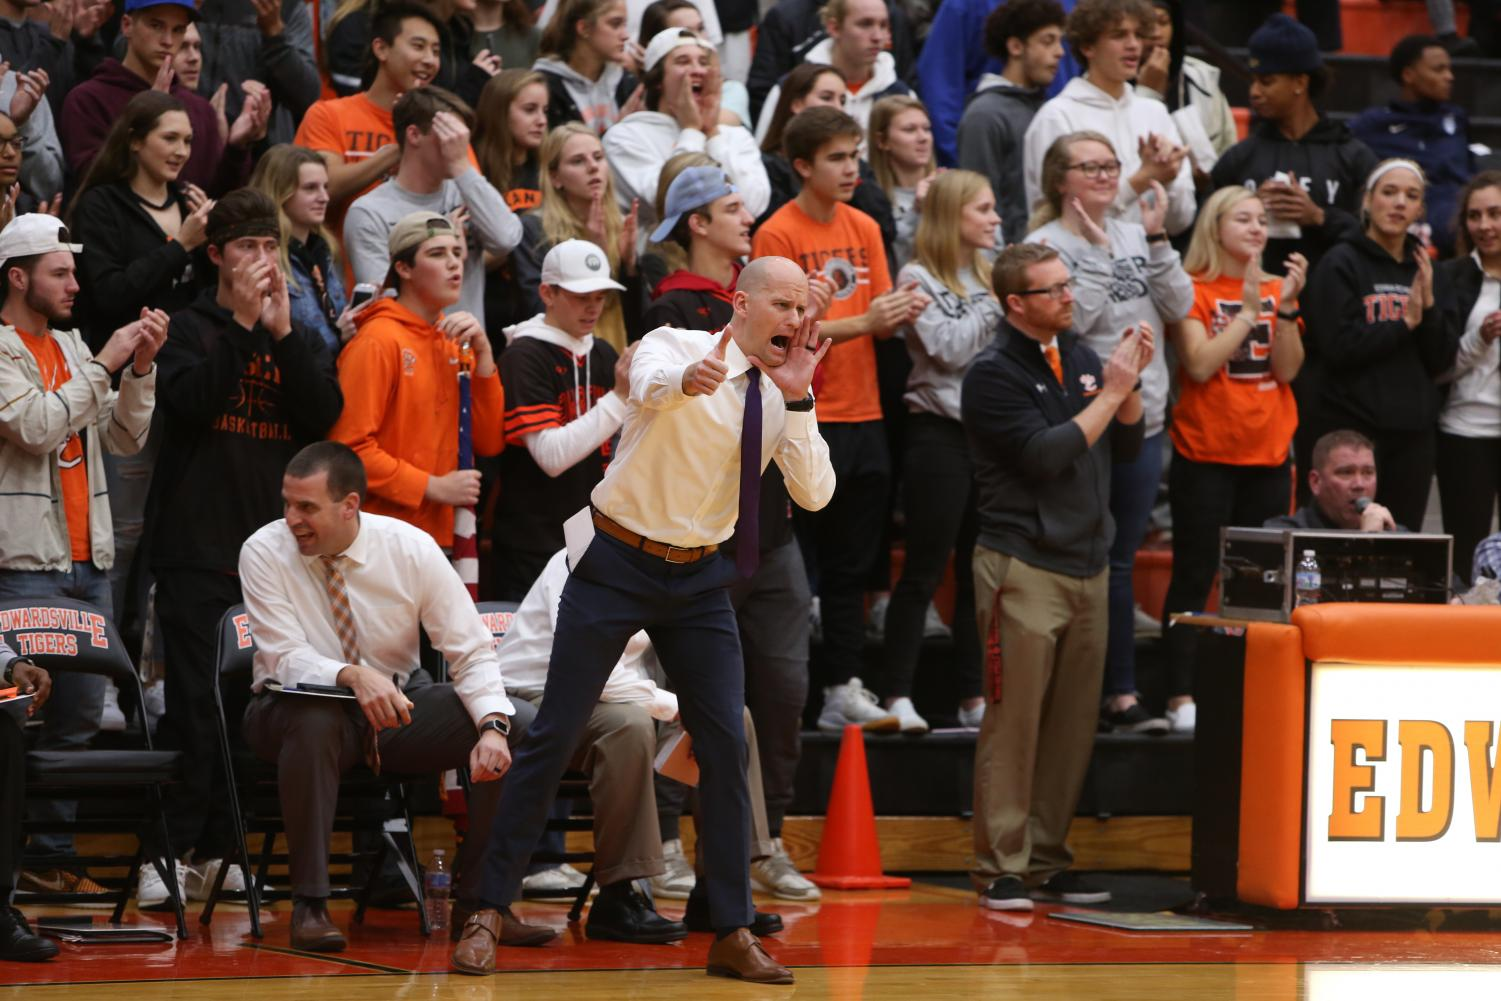 Coach Battas shouts at the basketball team in a home game this season.